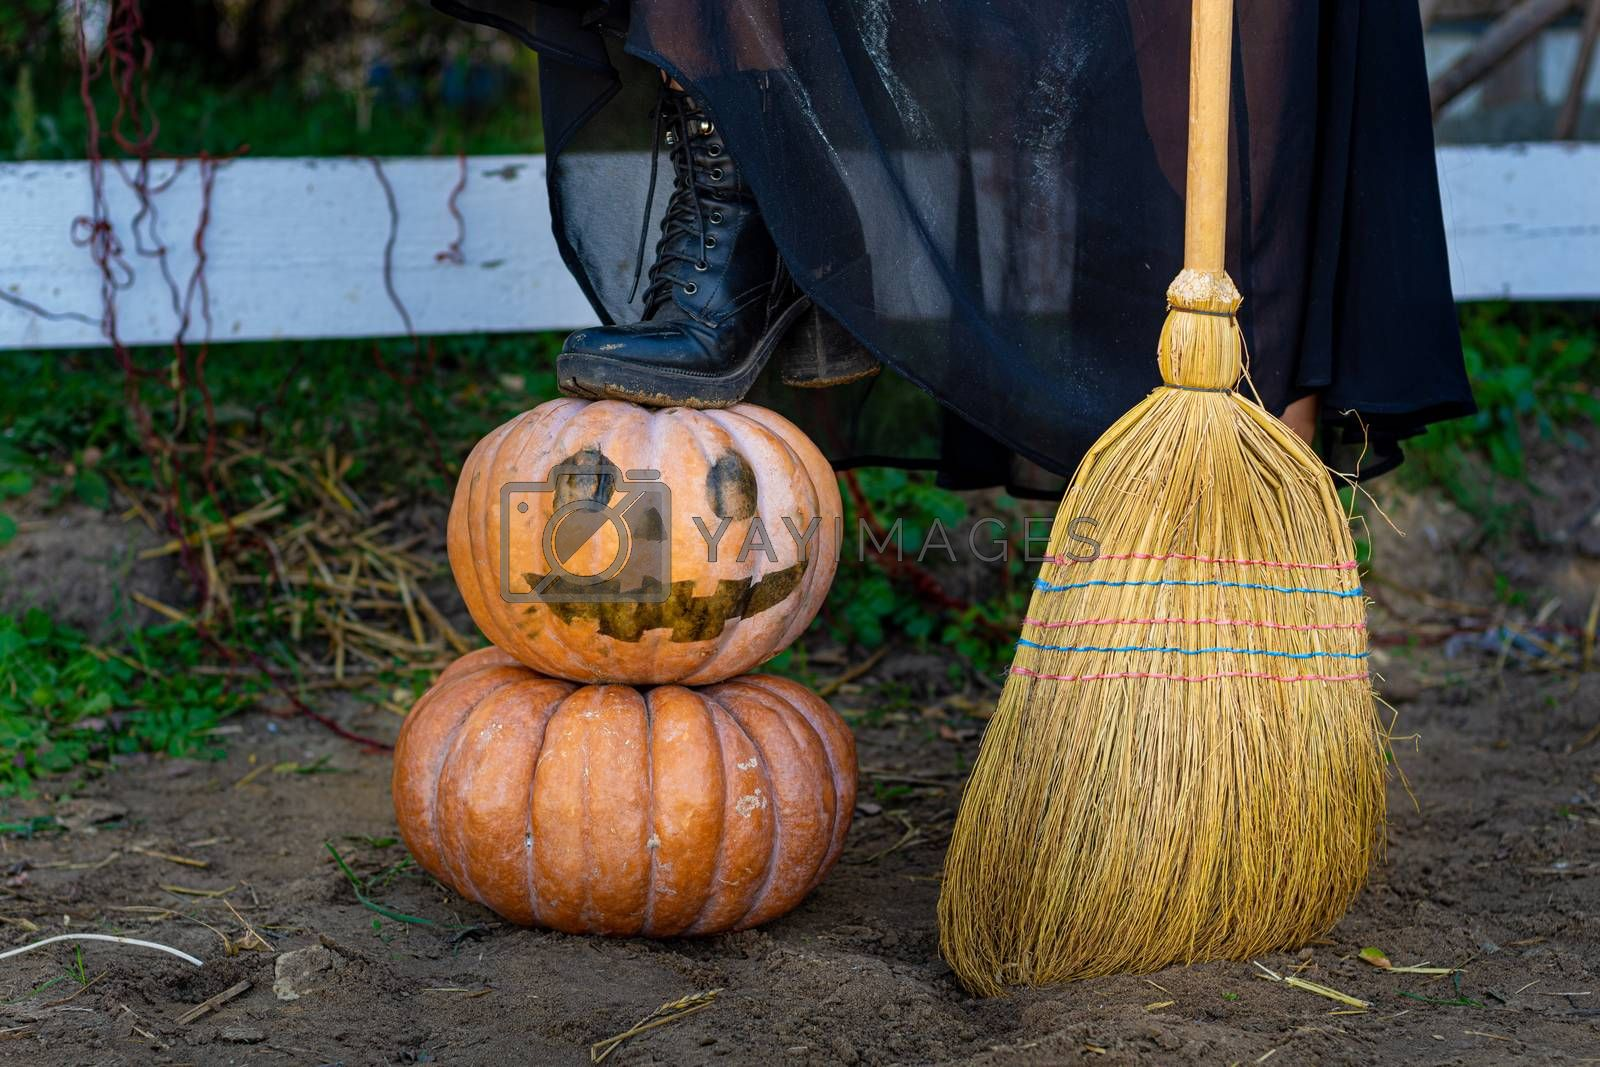 On a pumpkin with a drawn scary face is a witch's foot, next to a broom, close-up